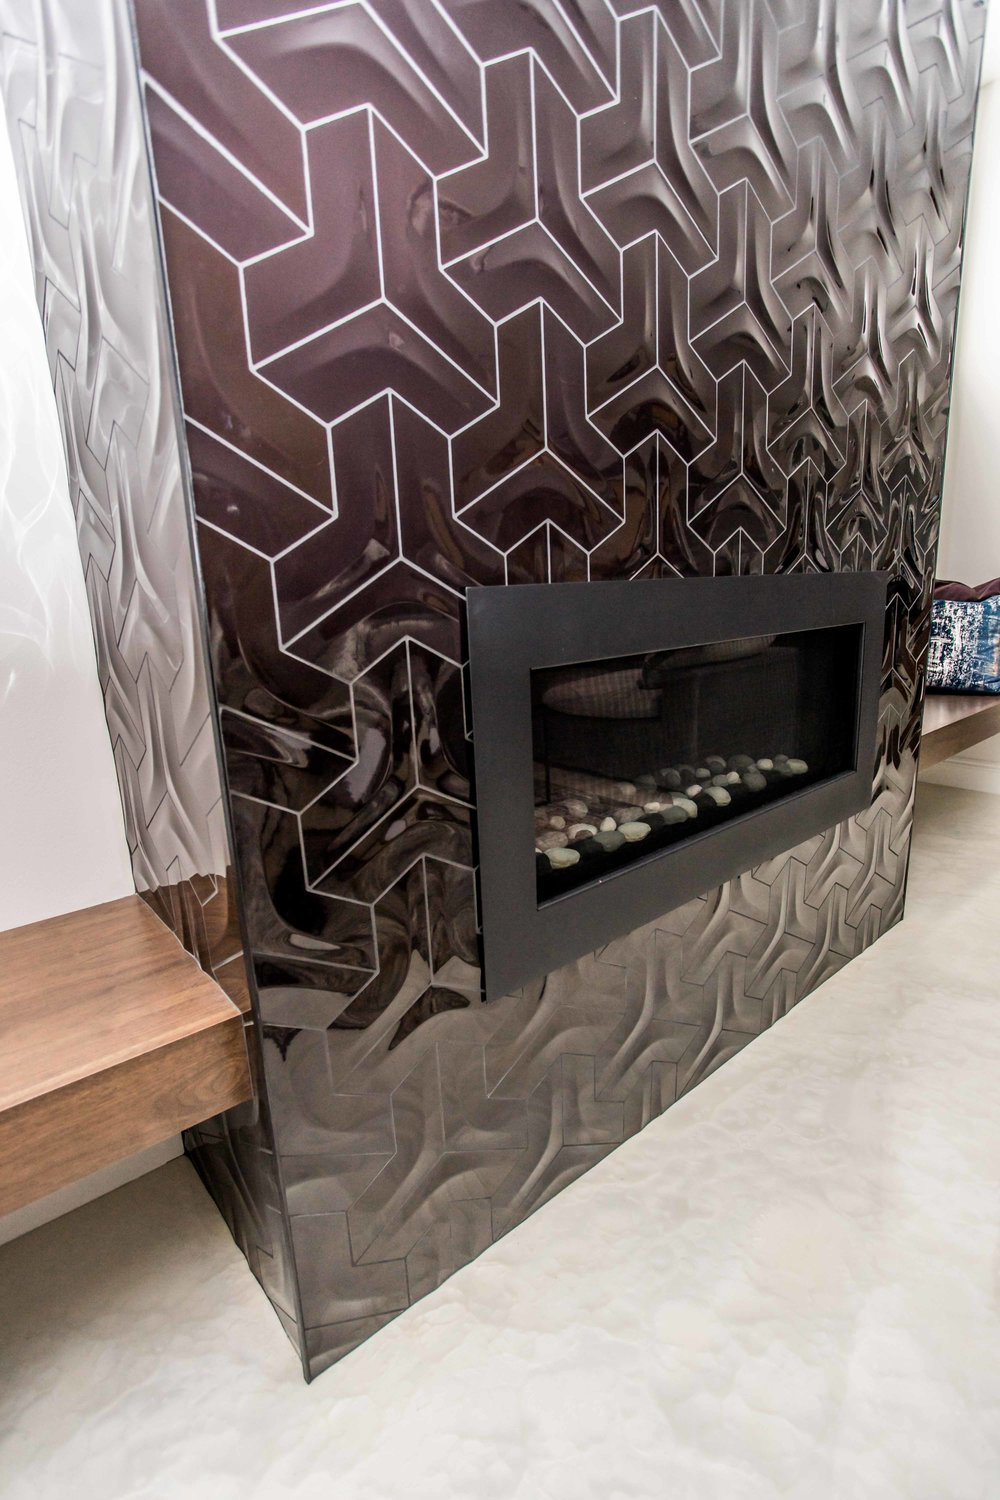 Lower Level Fireplace Tile Detail